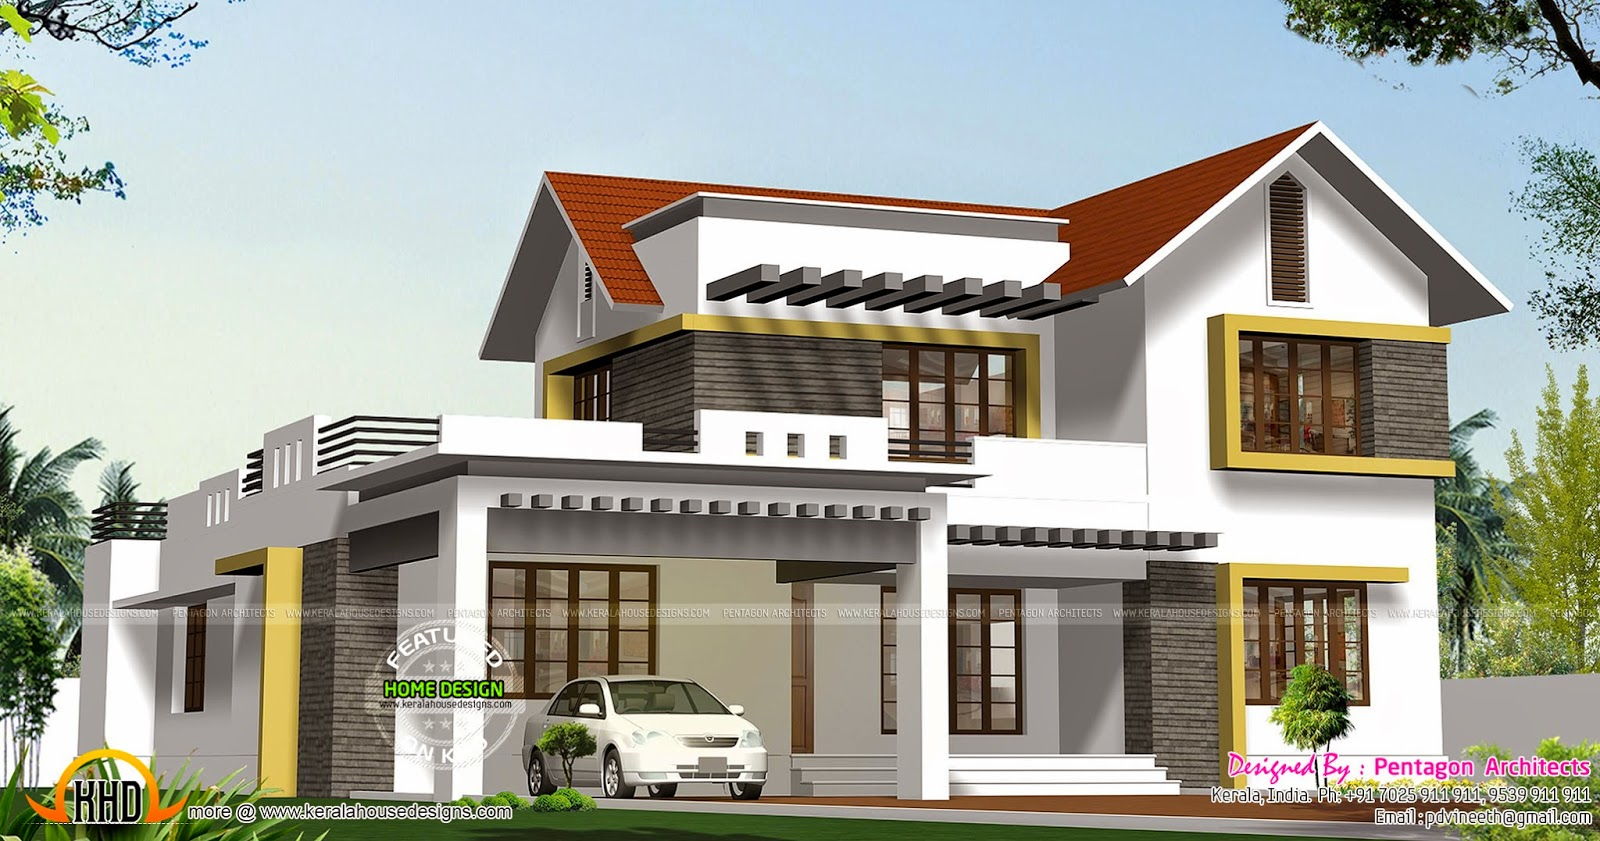 9 beautiful kerala houses by pentagon architects kerala for Pentagon house plans